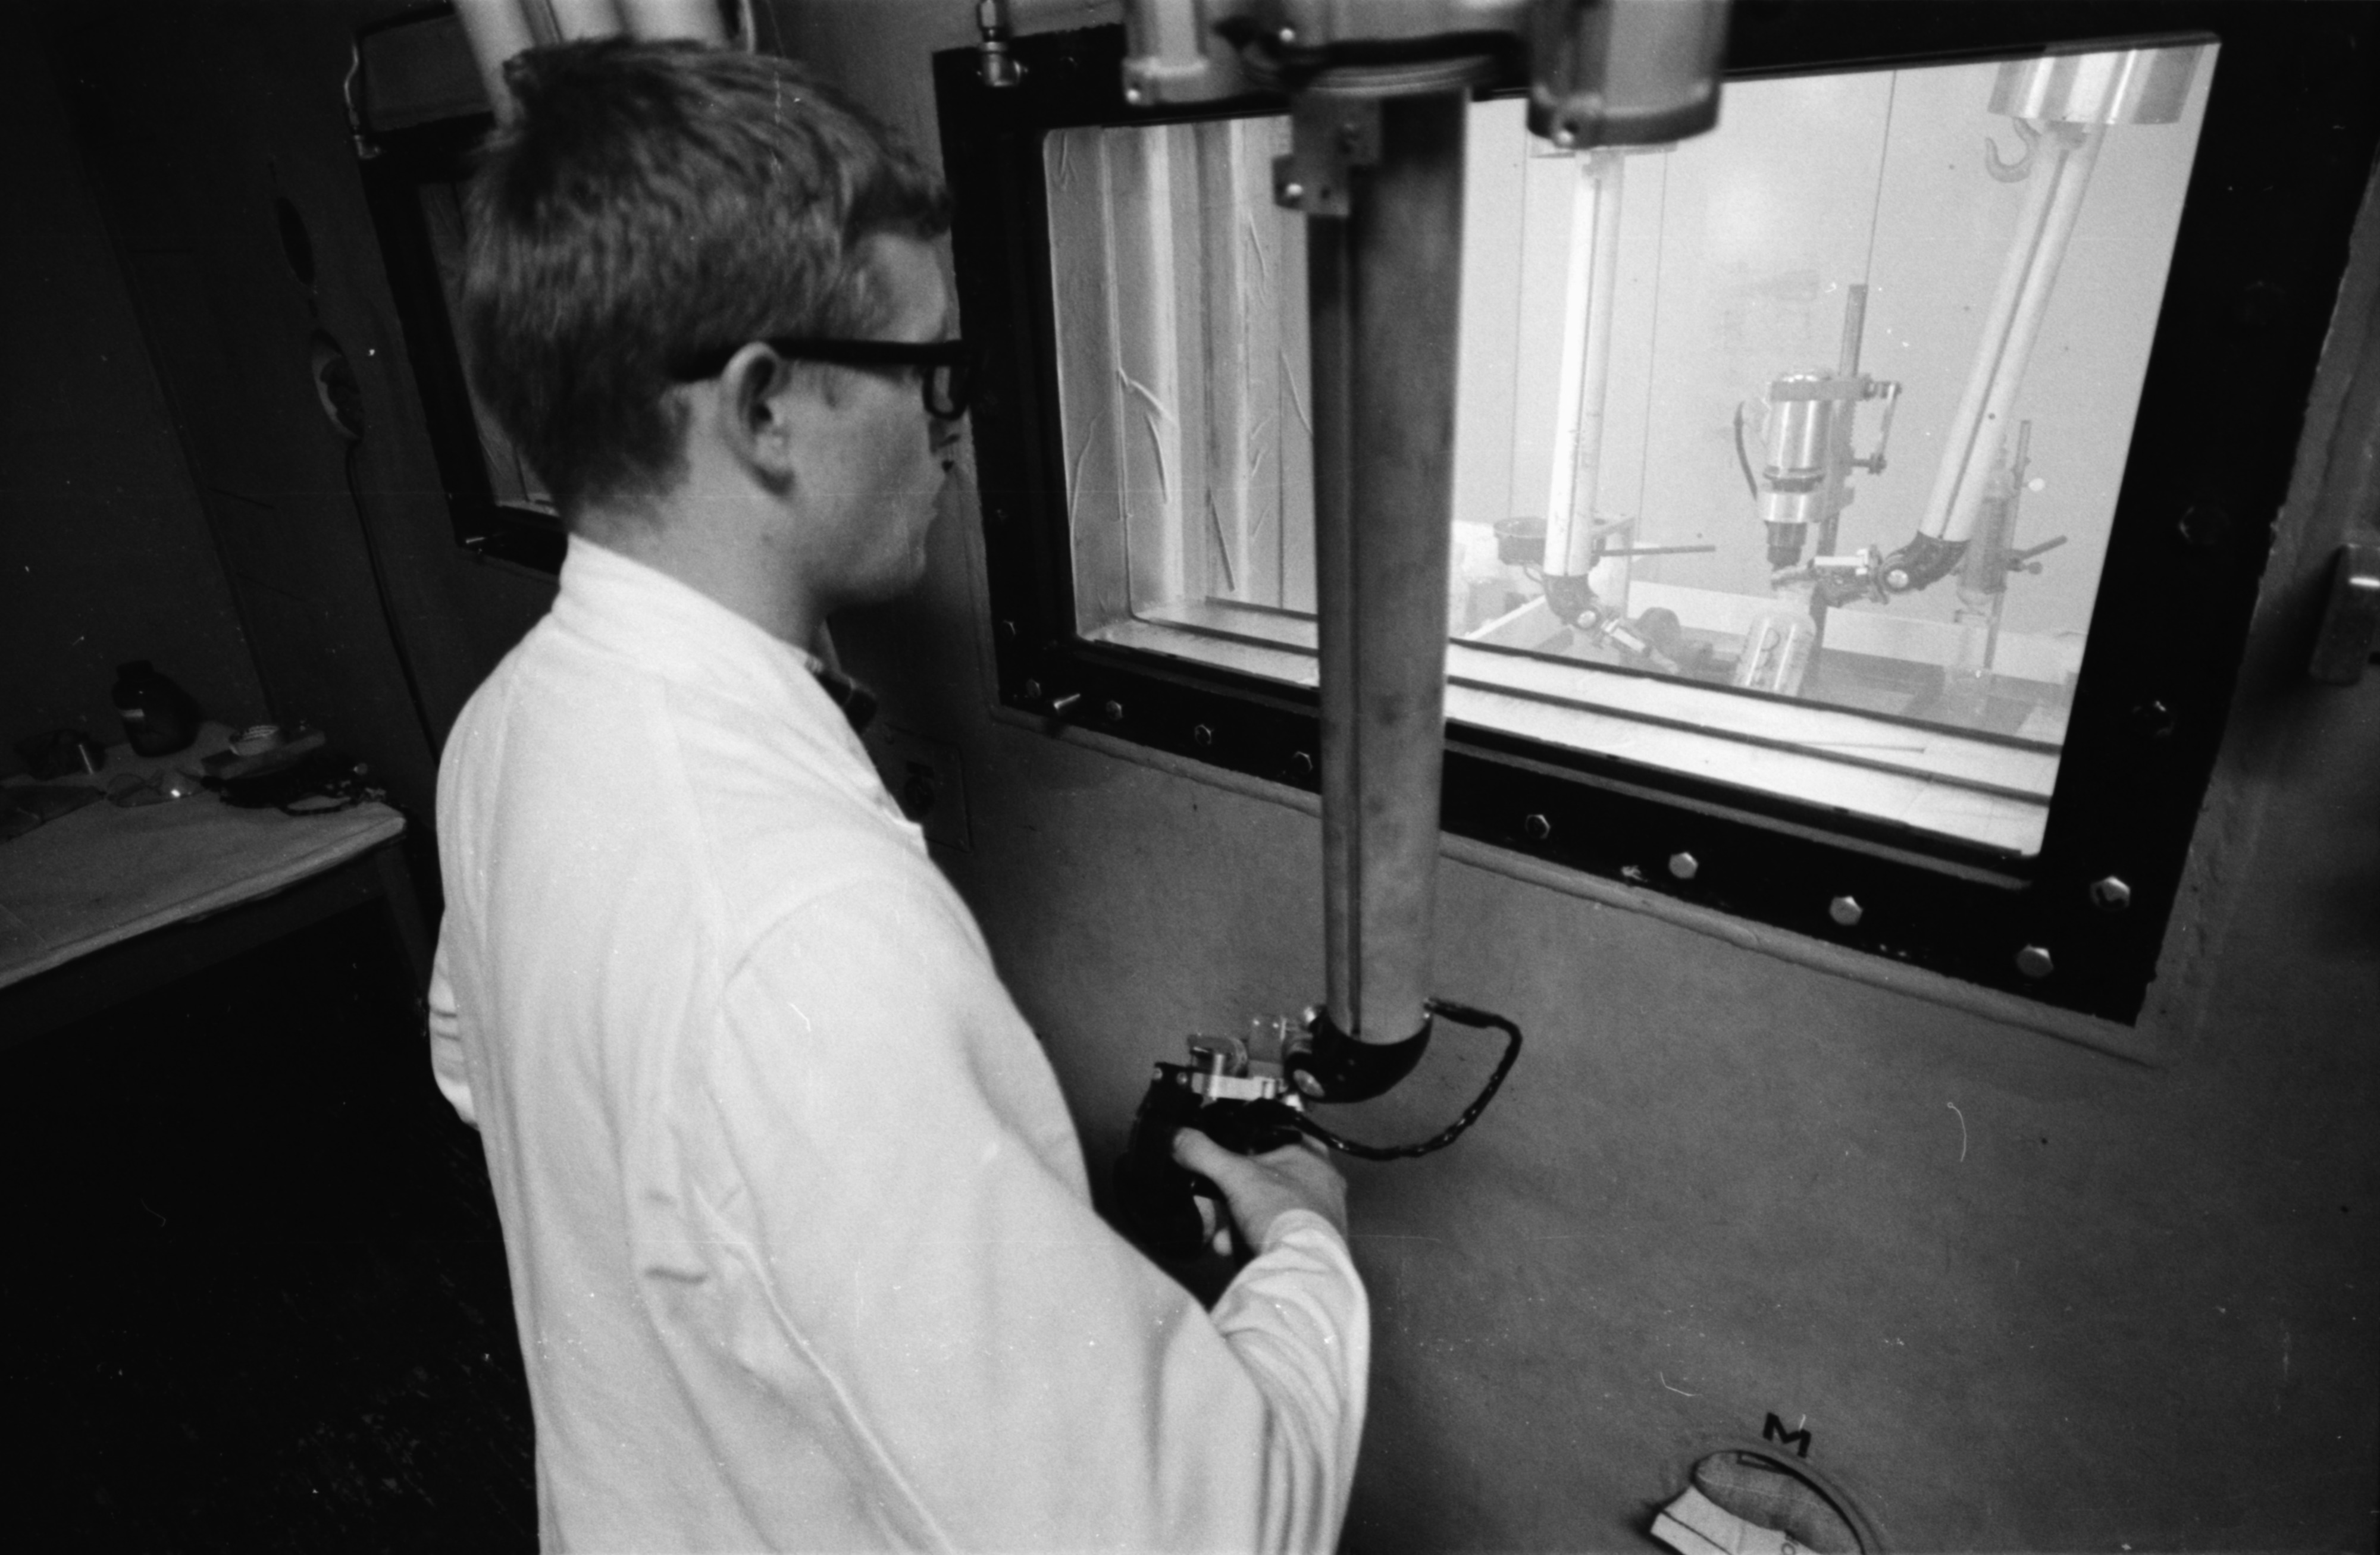 David Rawling works with the Ford Nuclear Reactor in the Phoenix Laboratory, North Campus, August 1968 image